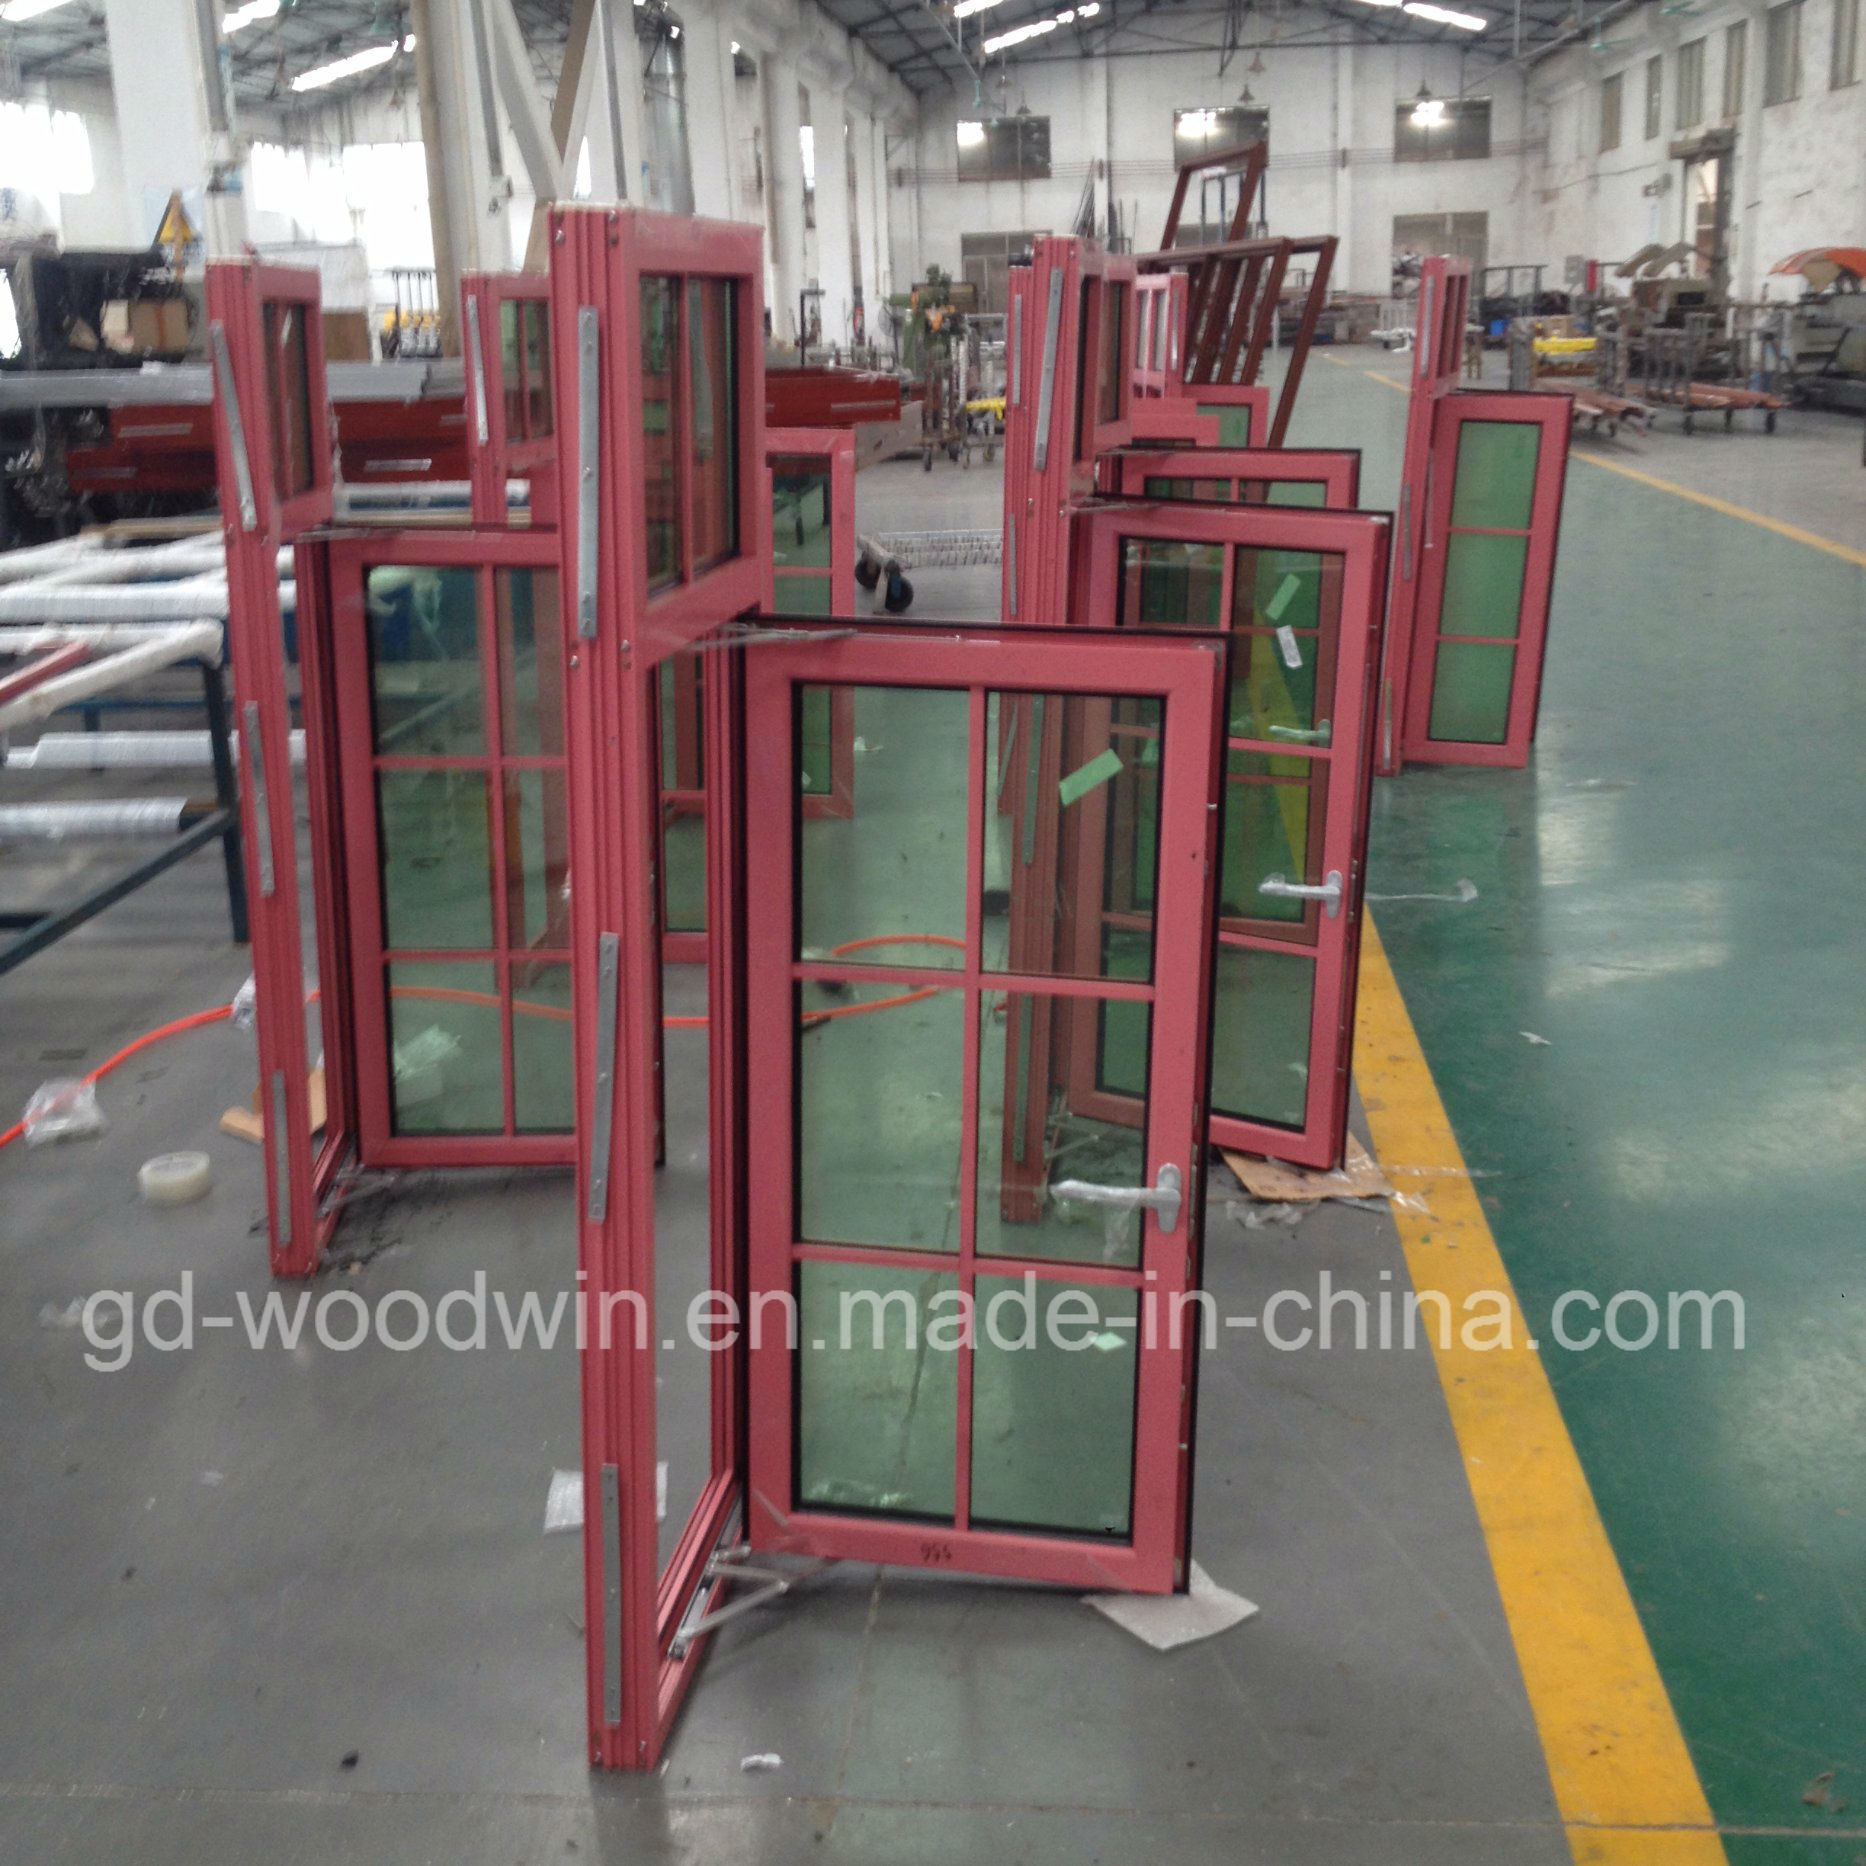 Woodwin Quality Guaranteed Double Glass Thermal Break Aluminum Window